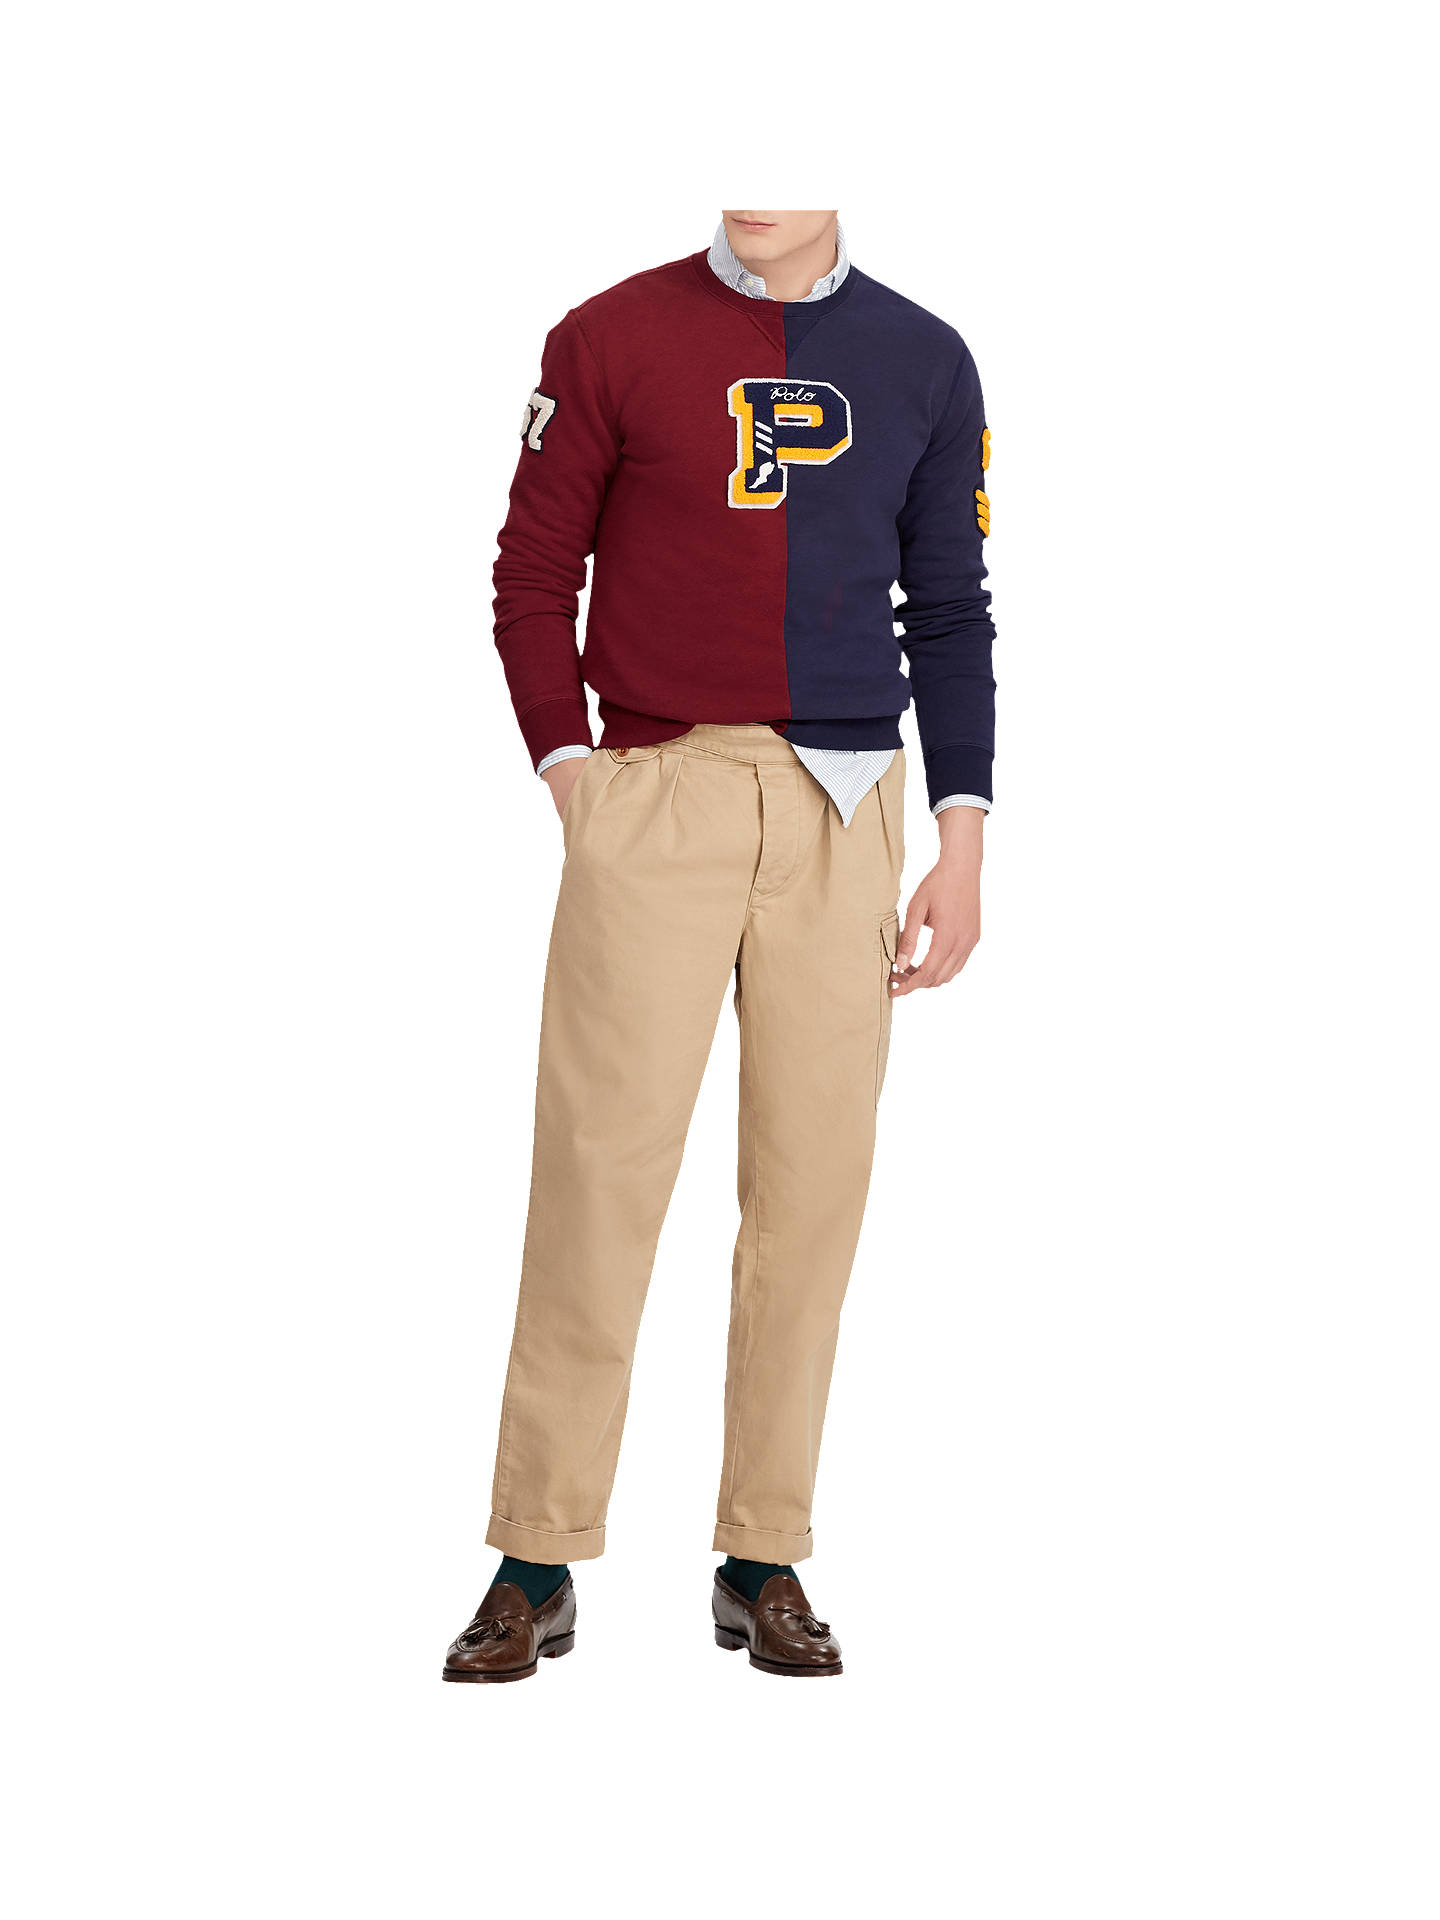 Buy Polo Ralph Lauren Logo Crew Neck Jumper, Cruise Navy/Burgundy, M Online at johnlewis.com